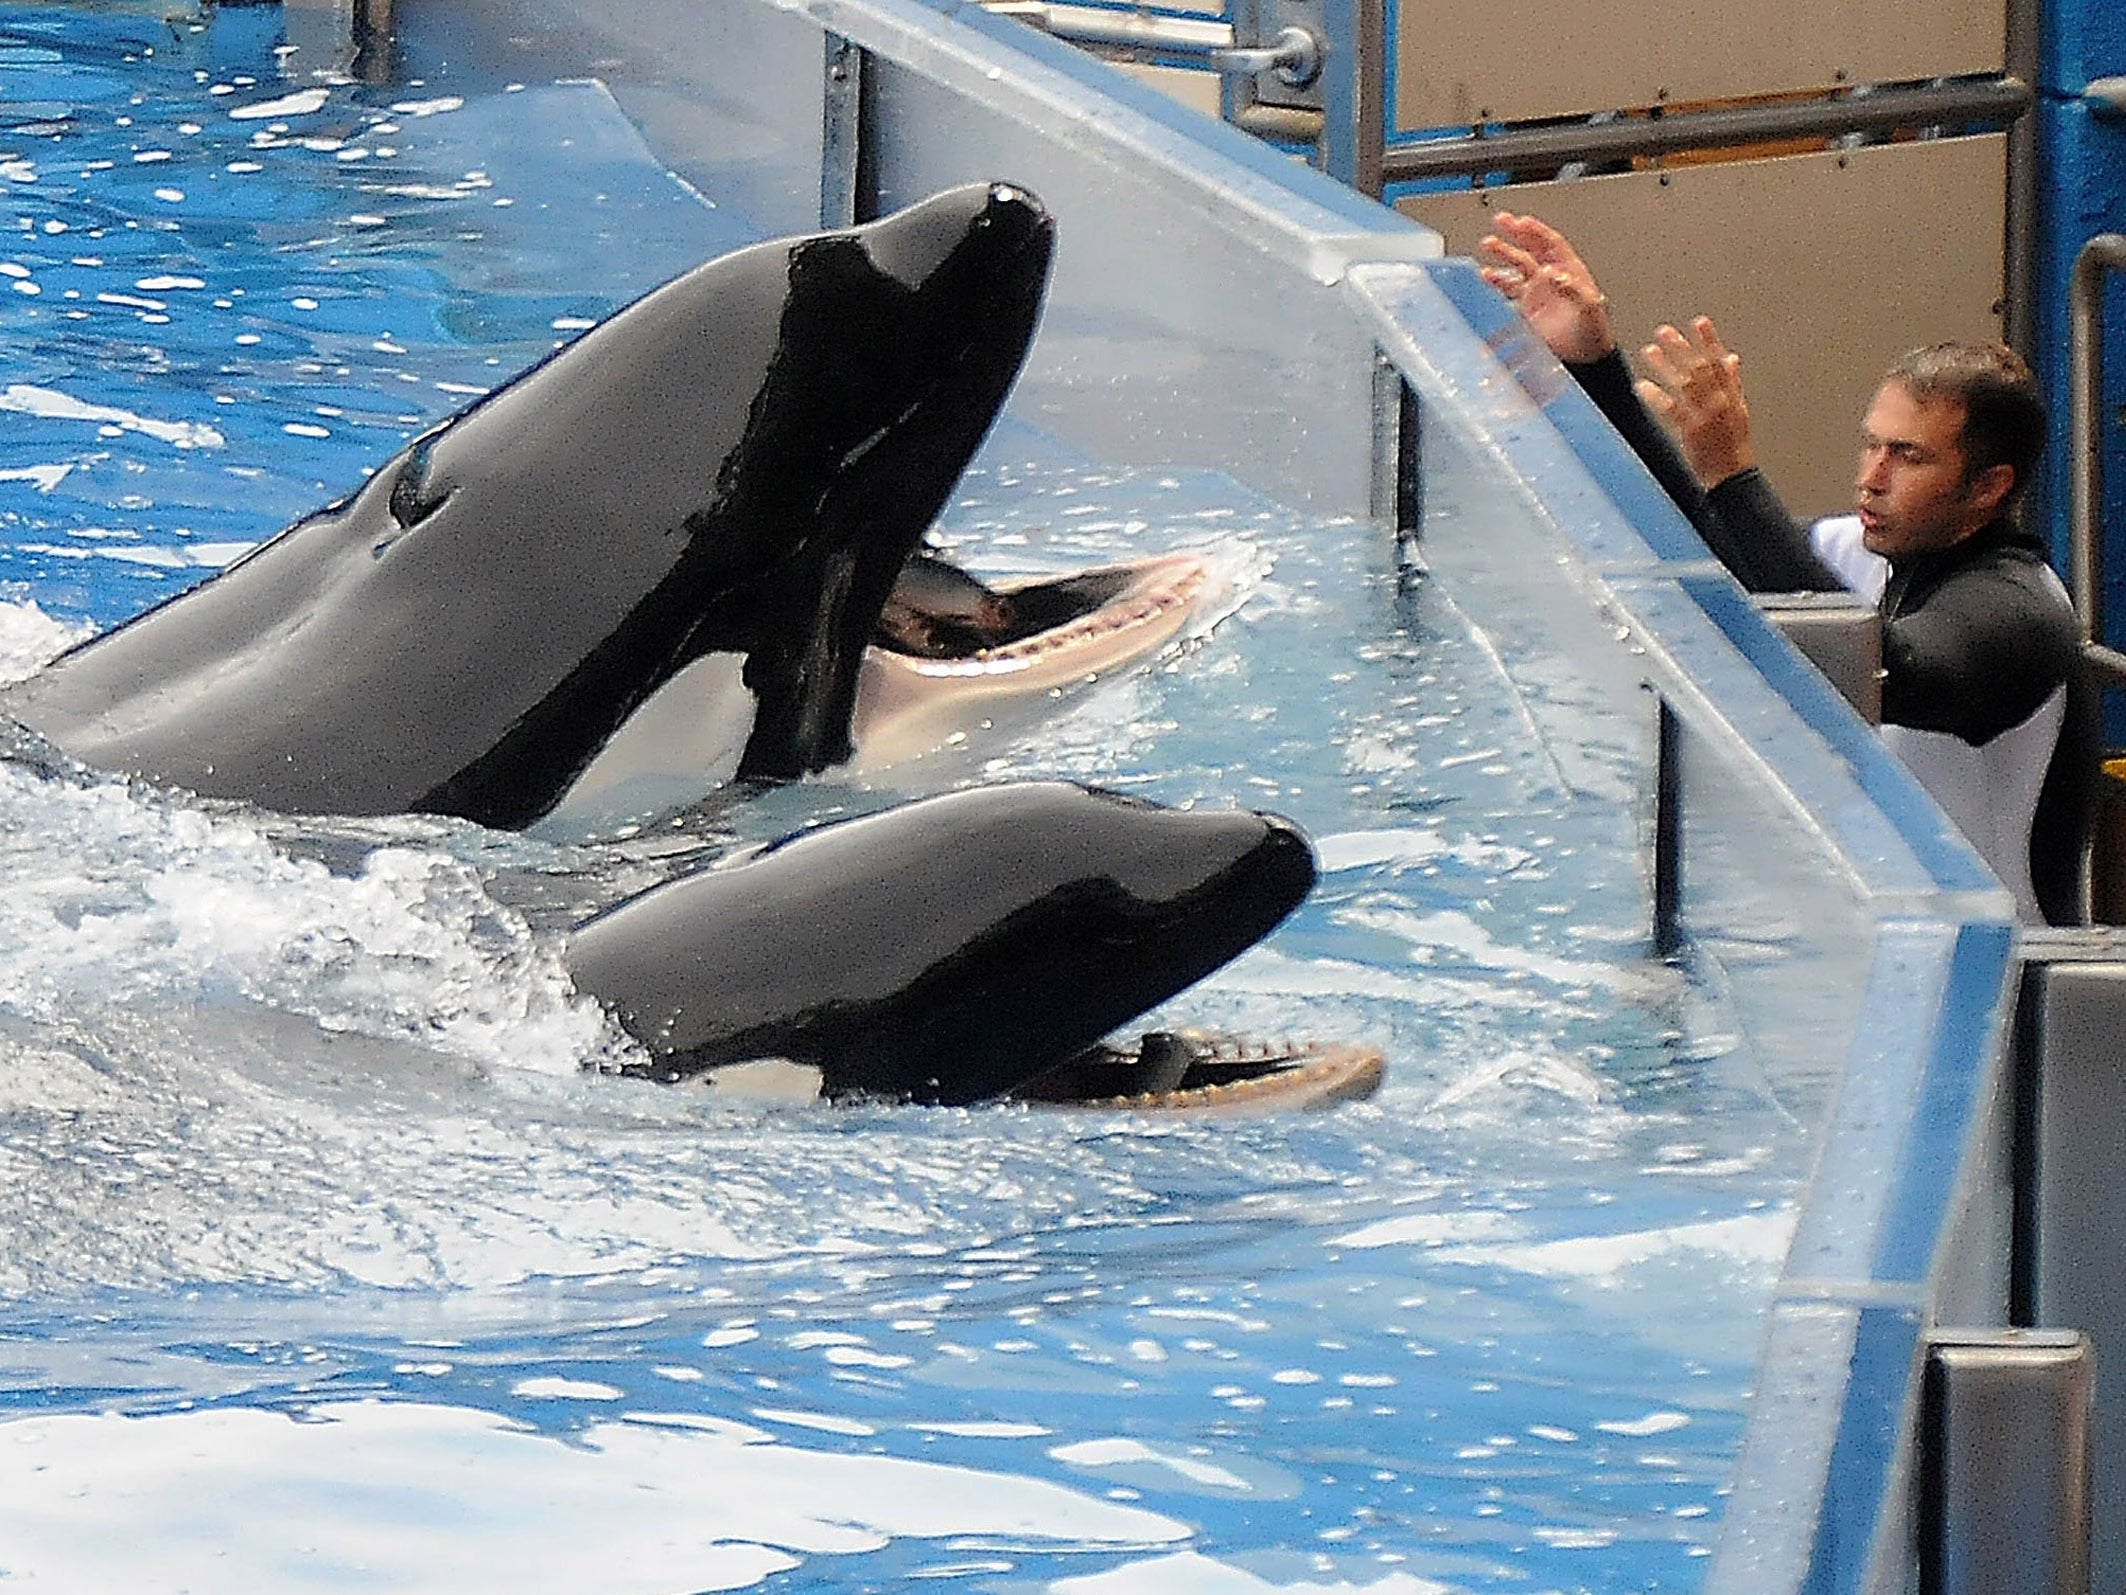 Thomas Cook to stop selling SeaWorld tickets if park doesn't improve after animal-welfare inspection